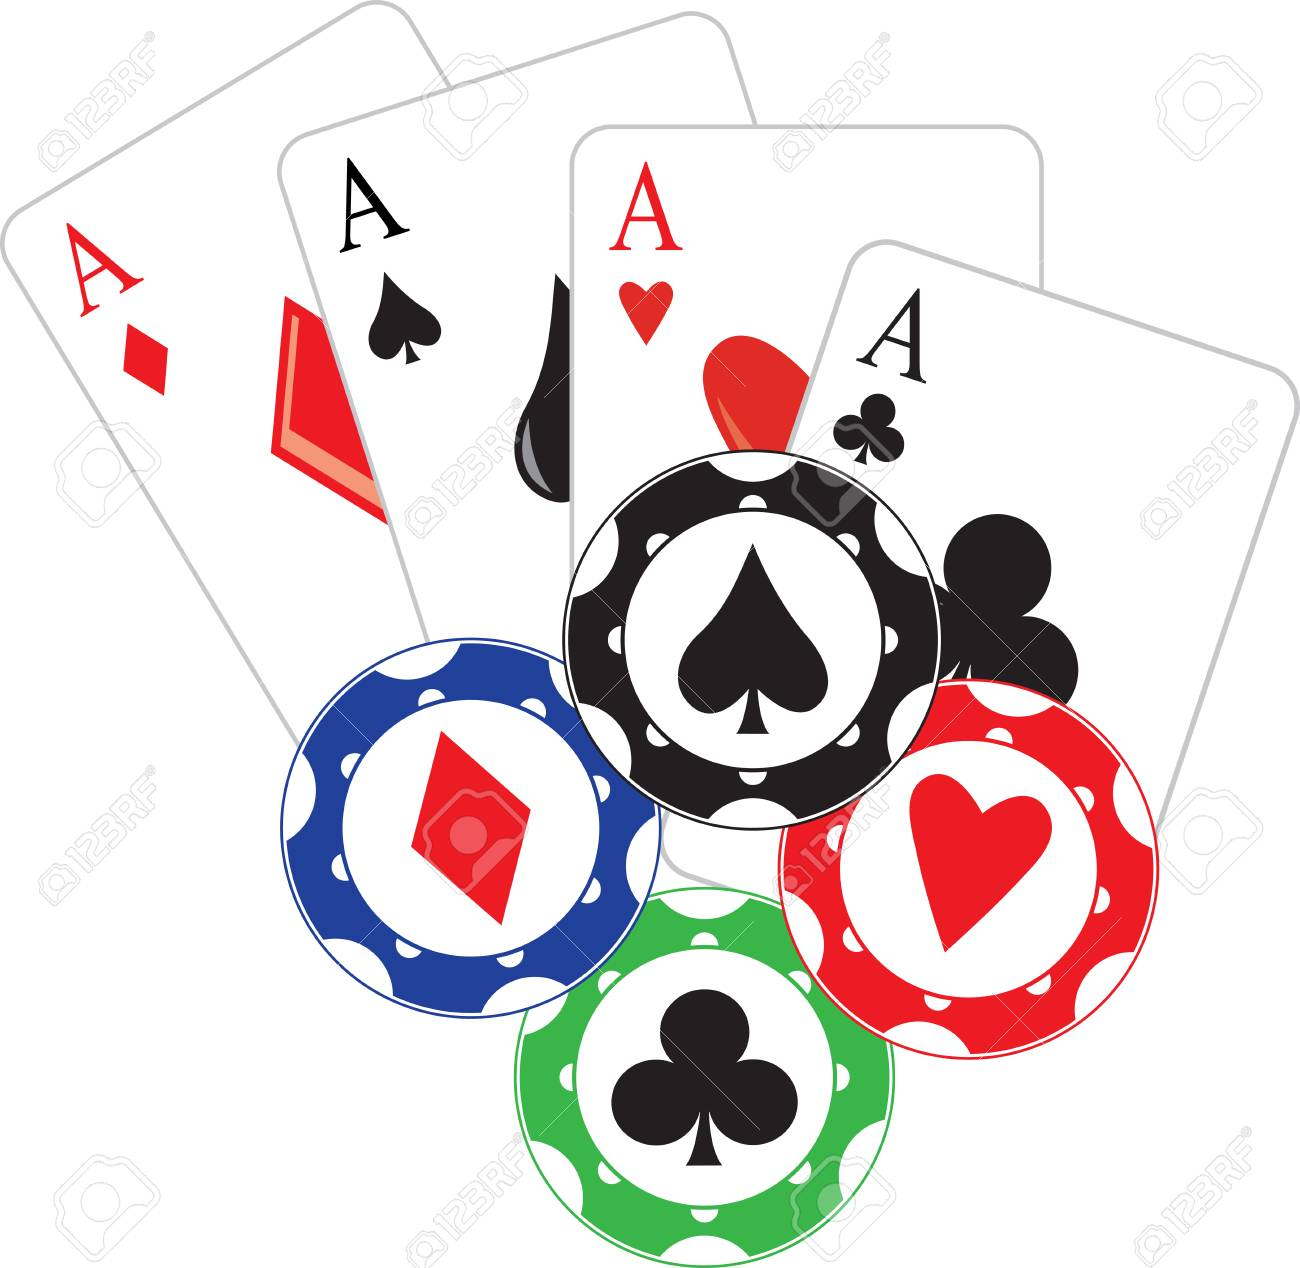 Find the best poker sites to play